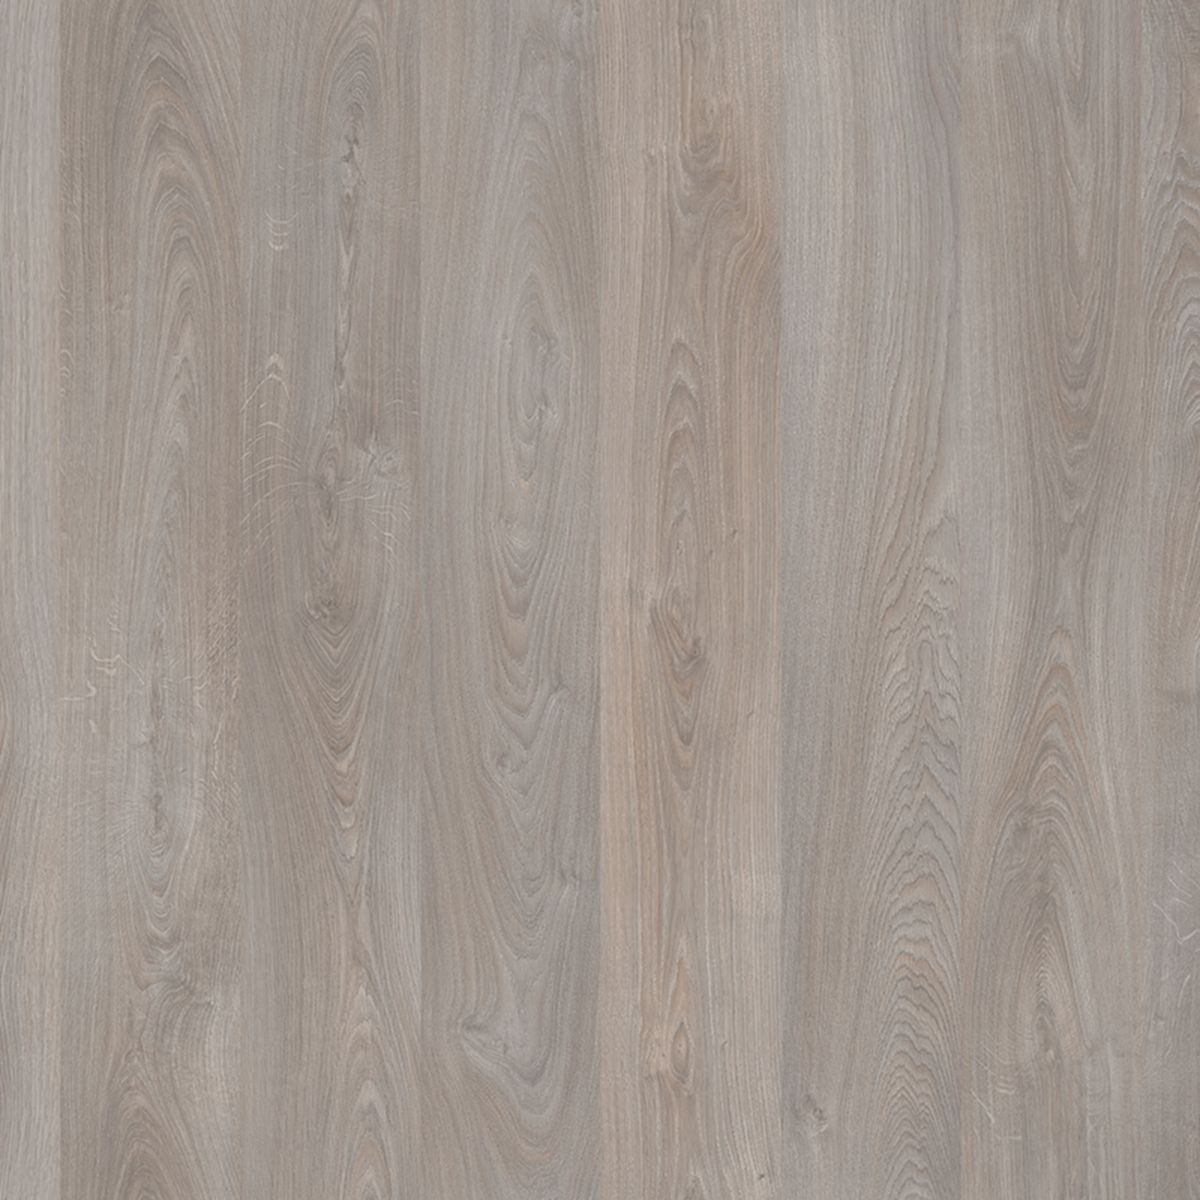 Laminaatti Tarkett Welcome 833 Grey Beige Sherwood Oak, 1-sauva, harmaa (42259288)